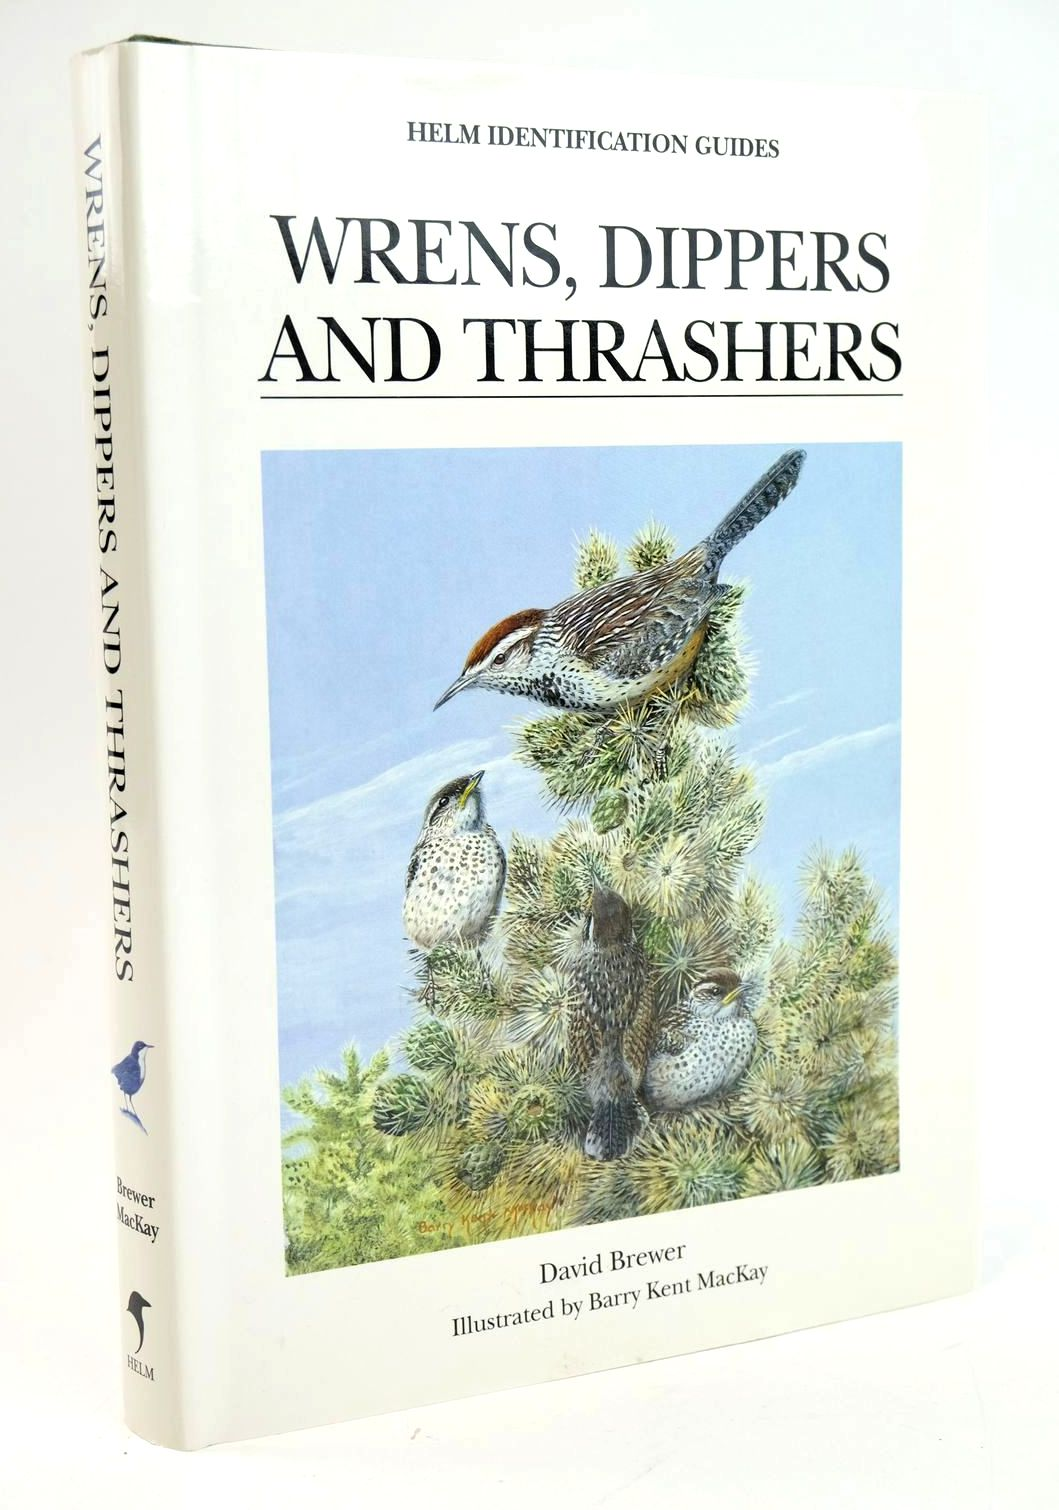 Photo of WRENS, DIPPERS AND THRASHERS (HELM IDENTIFICATION GUIDES) written by Brewer, David illustrated by Mackay, Barry Kent published by Christopher Helm (STOCK CODE: 1319289)  for sale by Stella & Rose's Books